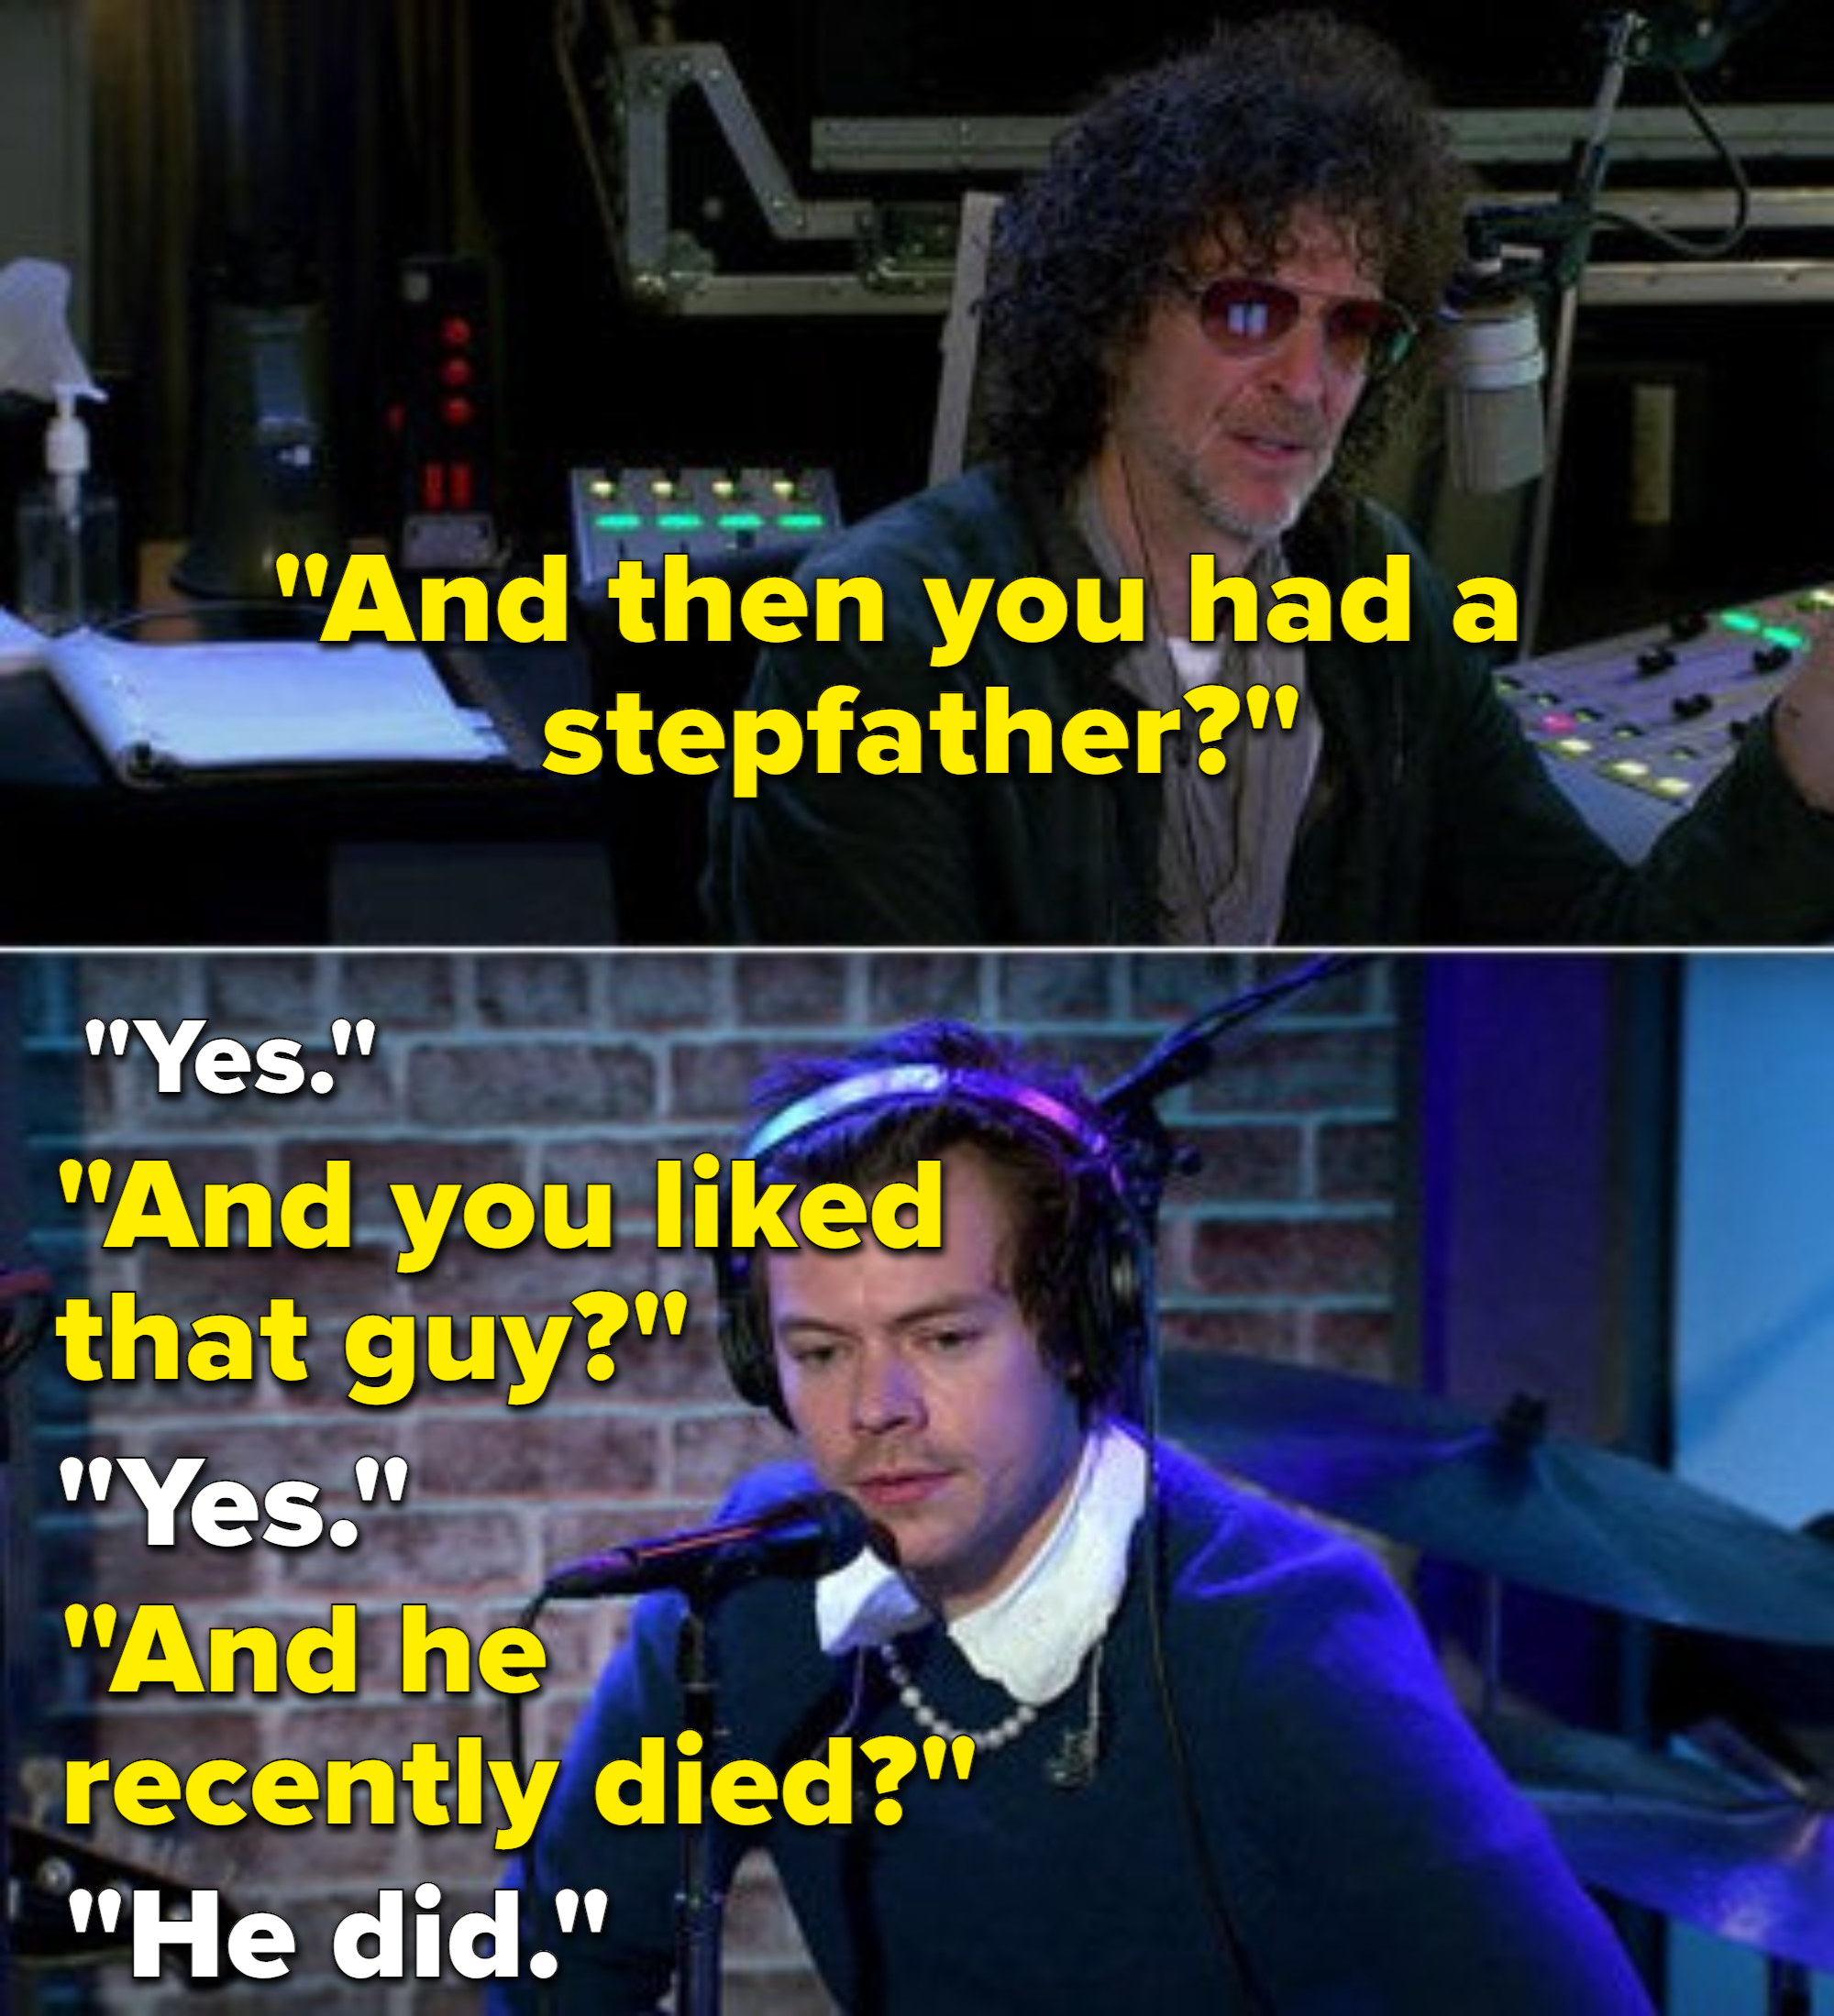 Howard Stern asking questions about Harry's relationship to his father and dead stepfather